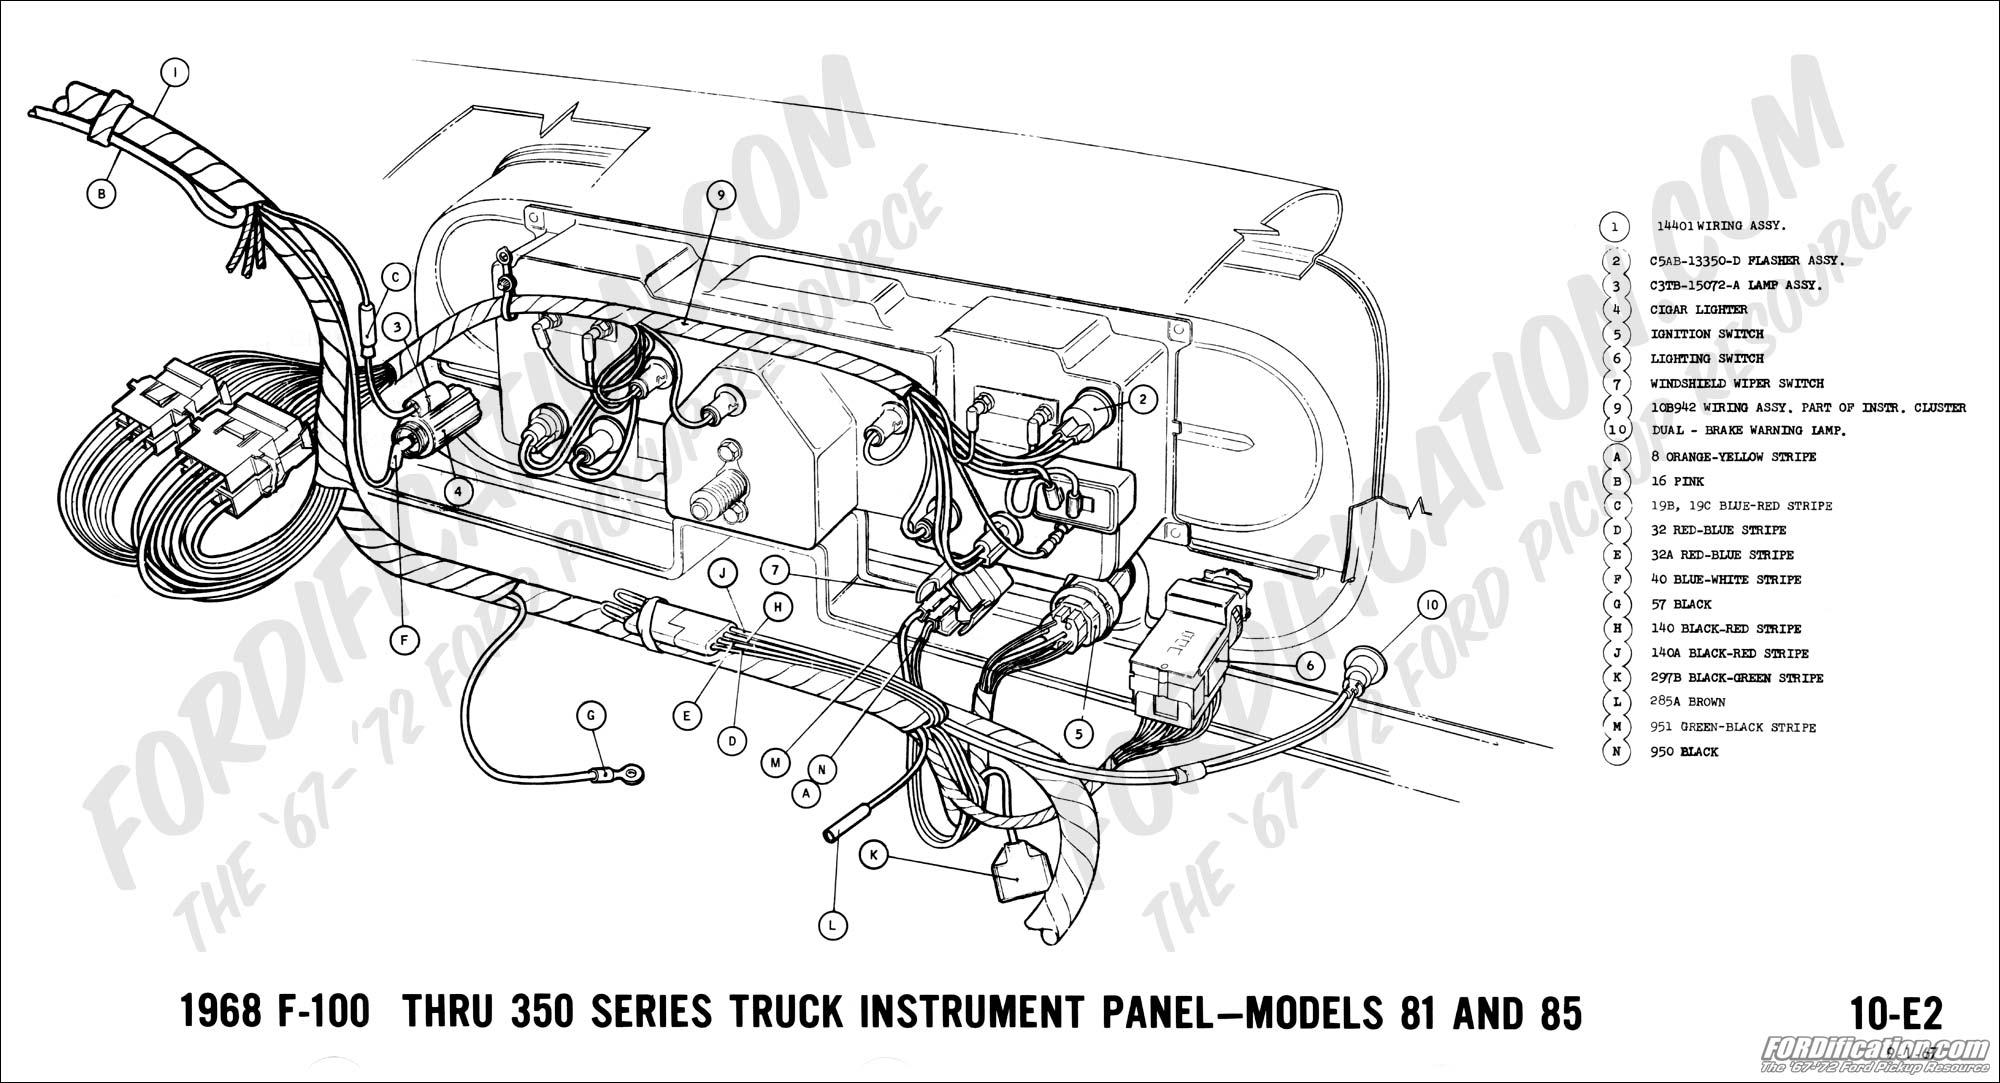 Official Ford 302 Engine Diagram Modern Design Of Wiring Jeep Cooling 1969 Library Rh 73 Skriptoase De 1990 Failures Ho